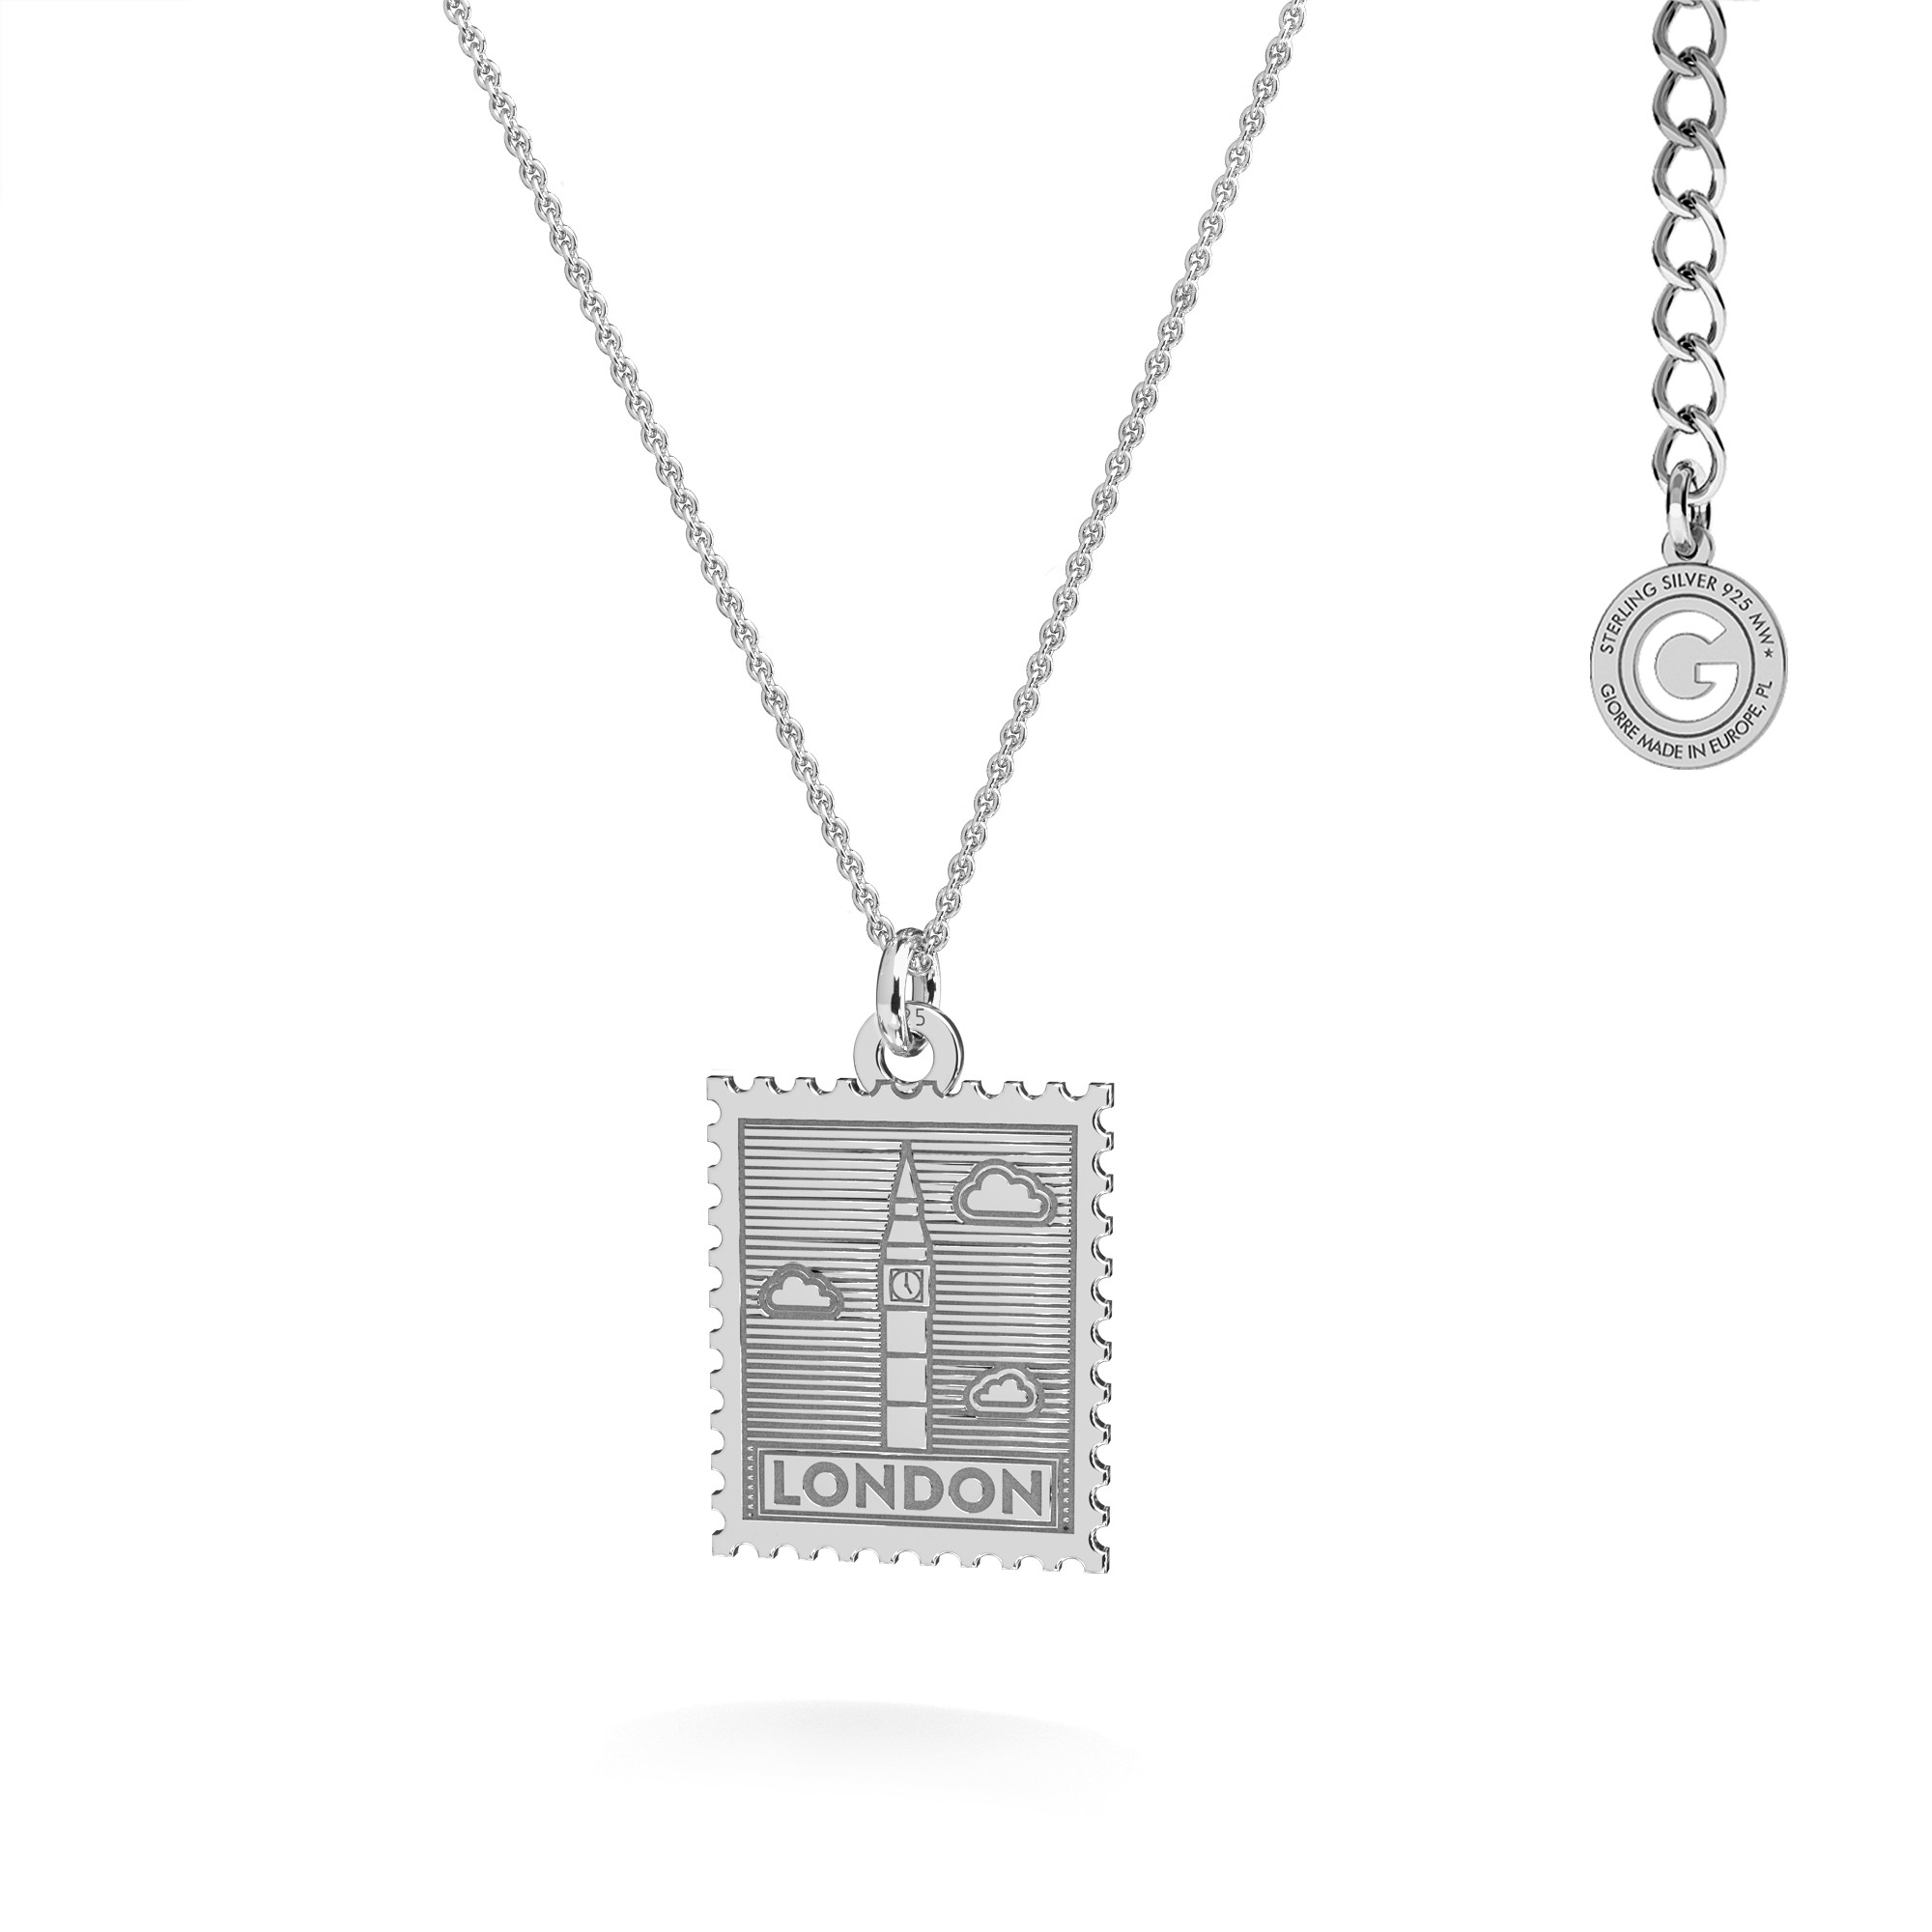 Paris postage stamp necklace sterling silver 925